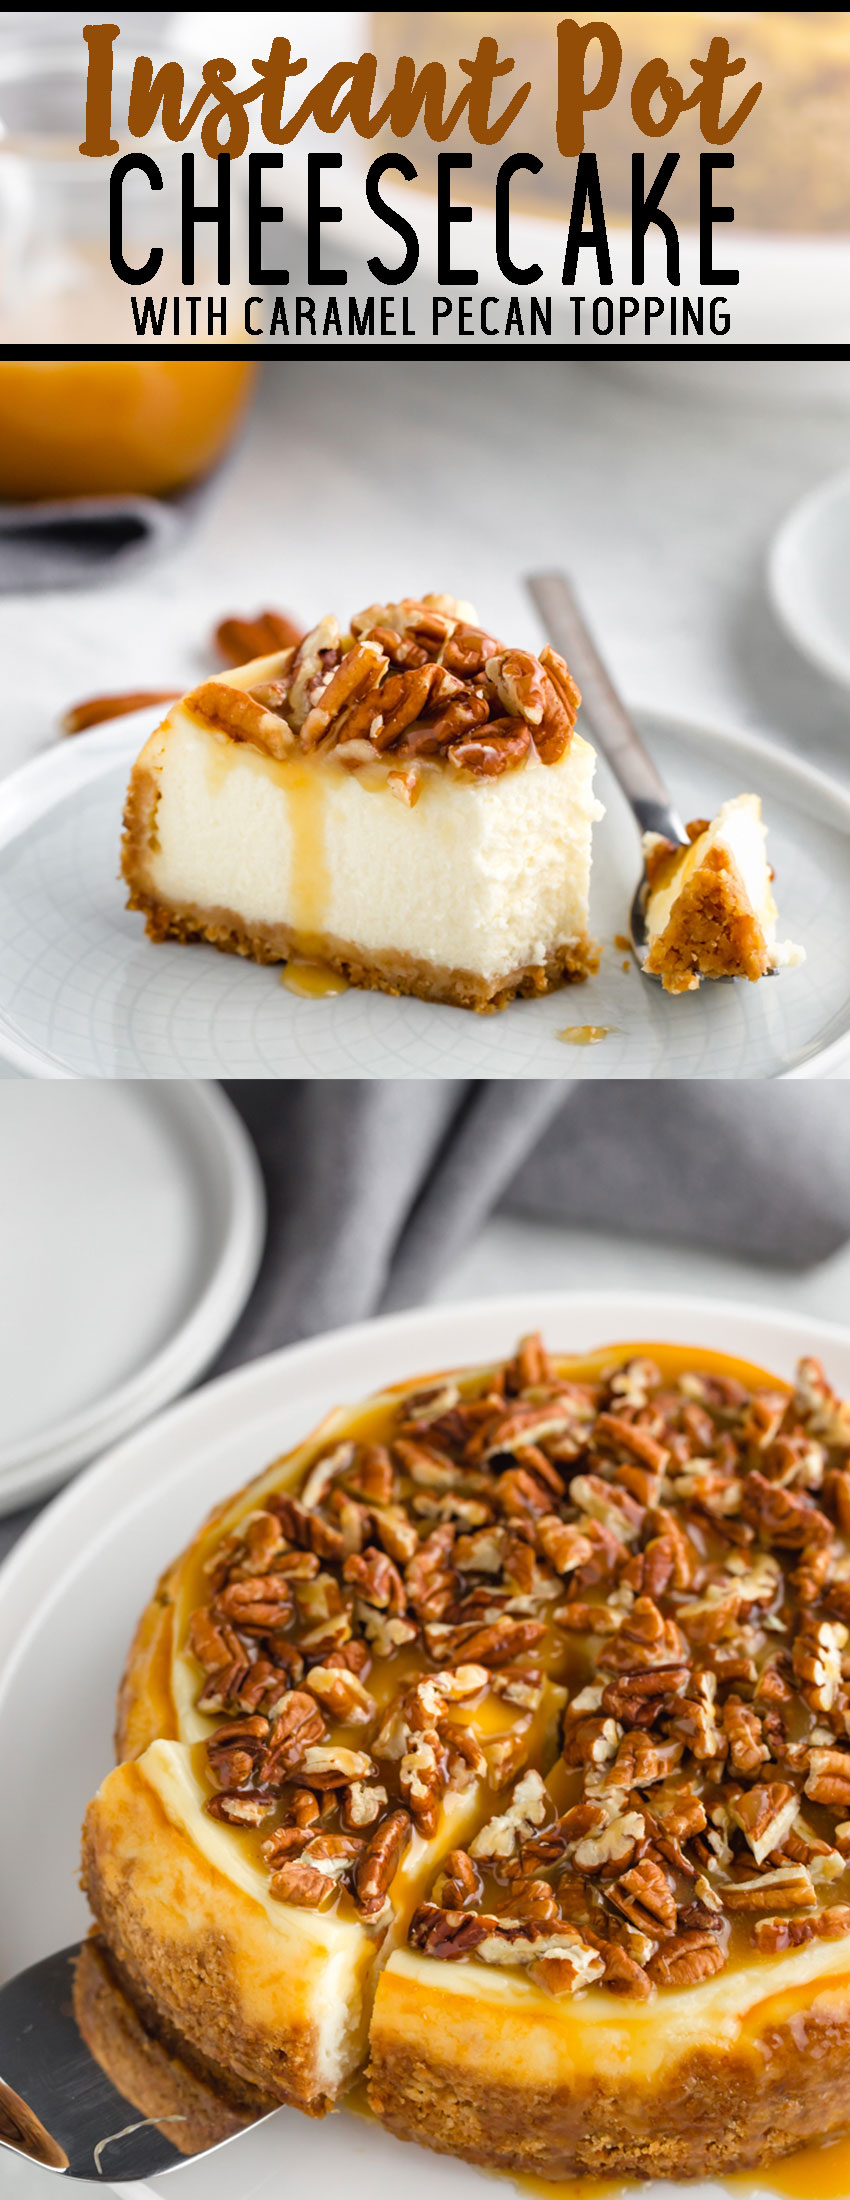 Instant Pot Cheesecake with a caramel pecan topping